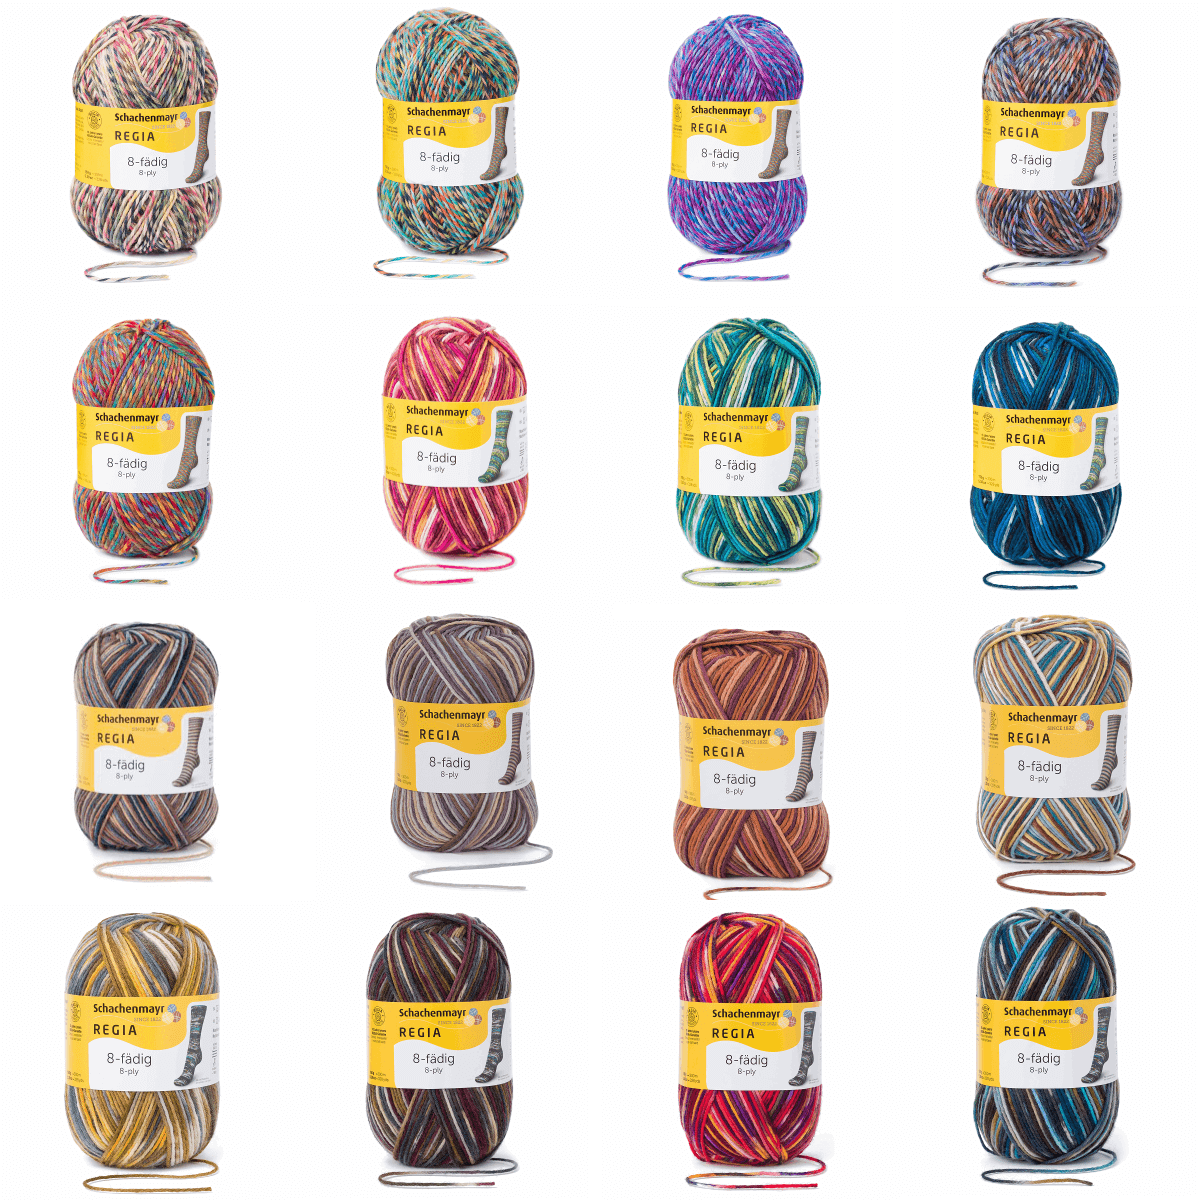 Regia Colour 8 PLY Stripe Knitting Crochet Knit Yarn Craft Wool 150g Ball 8997 Stockholm Svartlog